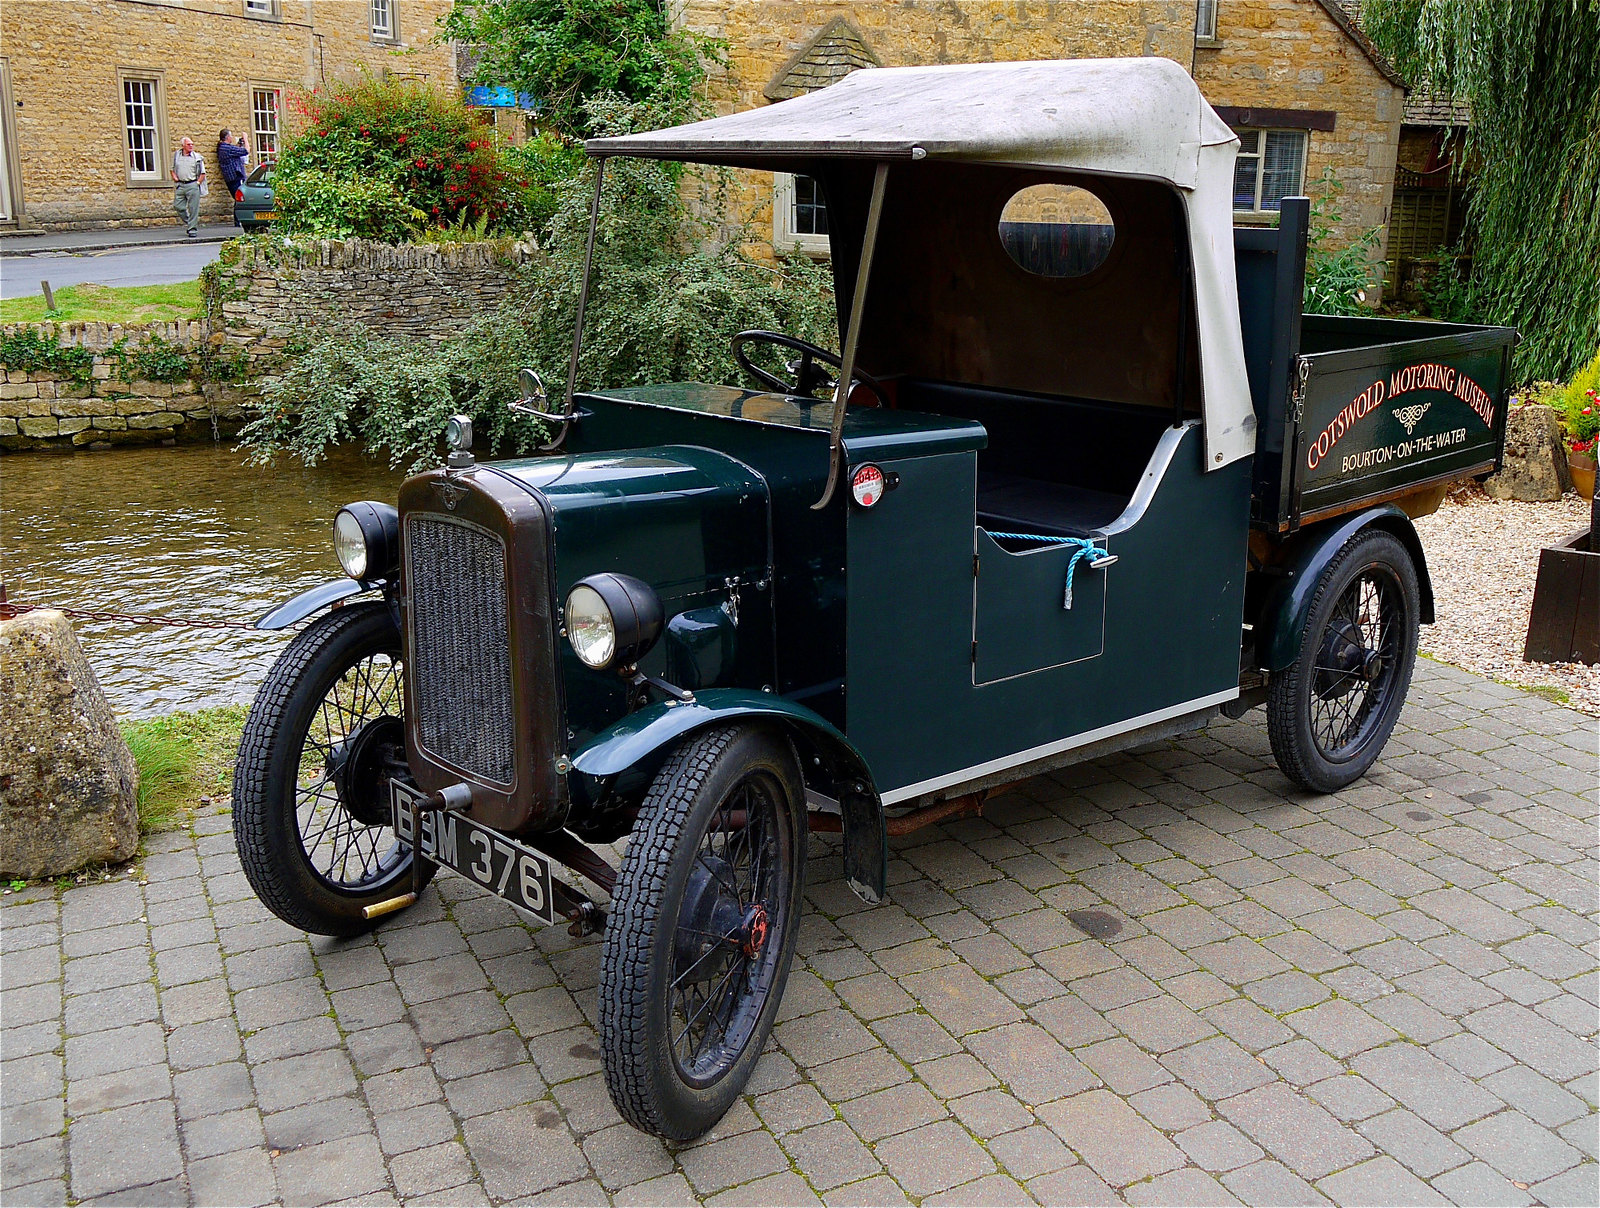 1937 Austin van at the Cotswolds Motor Museum in Bourton-on-the-water